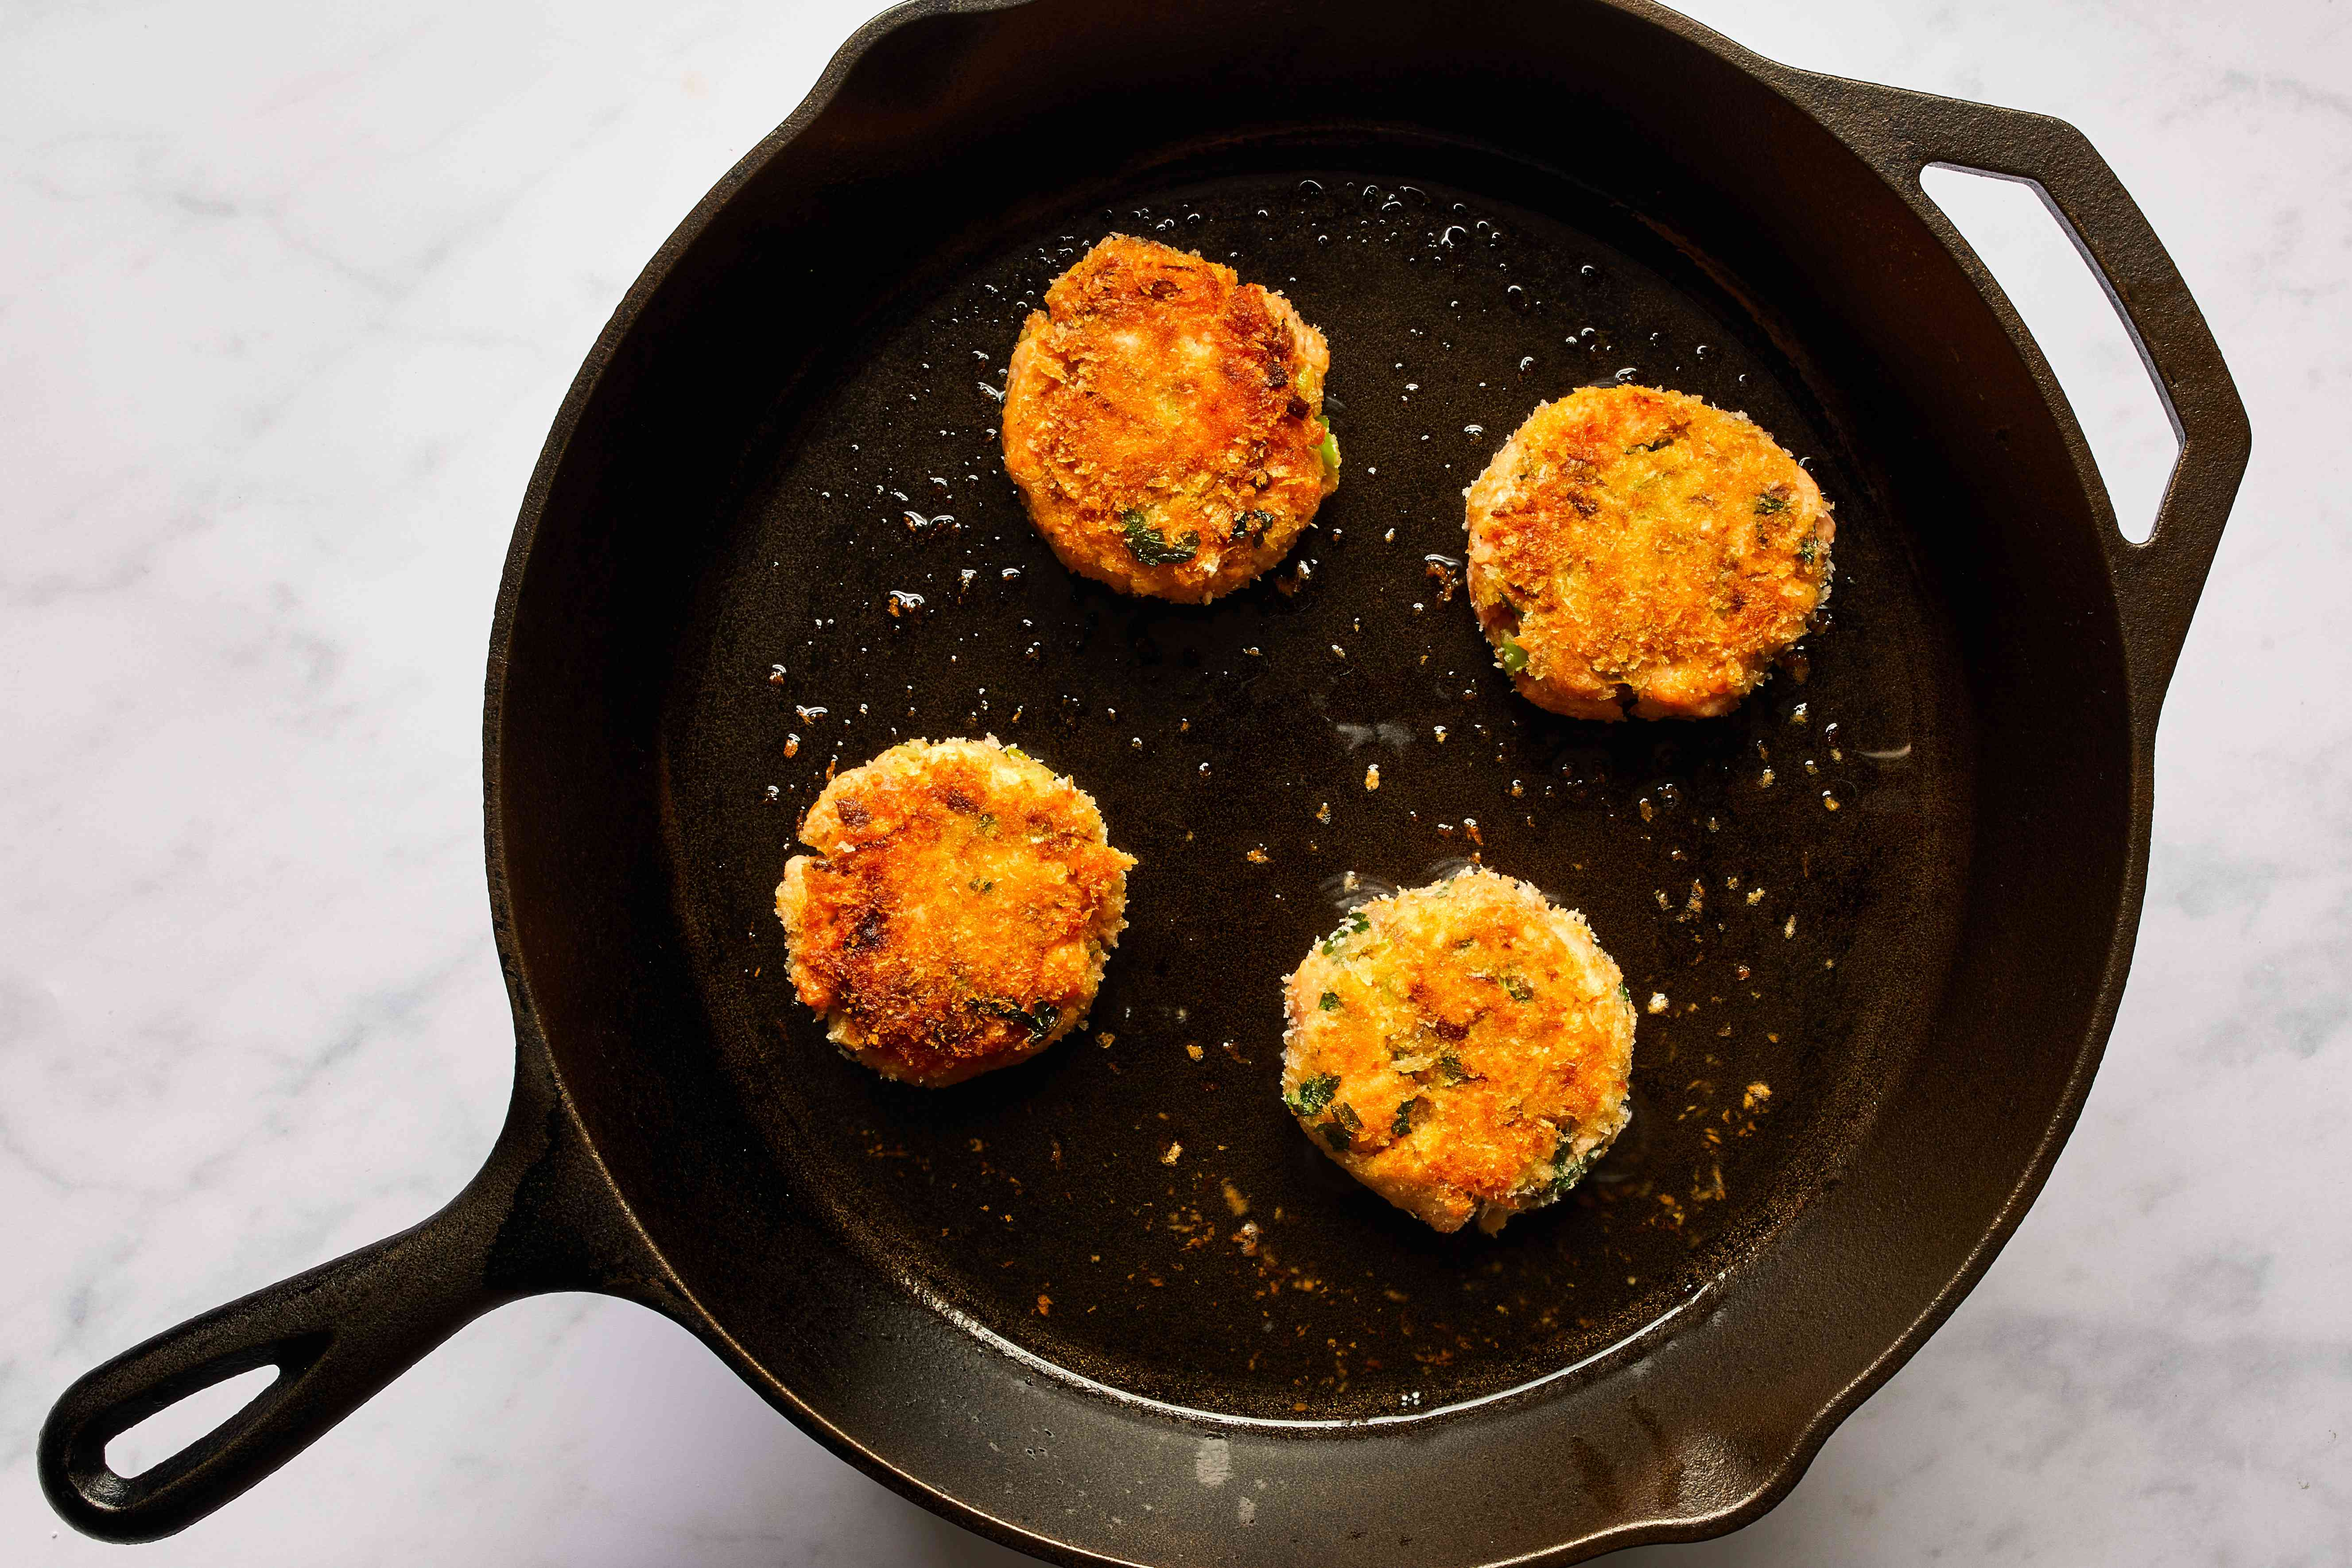 Panko-crusted salmon cakes in a cast-iron pan